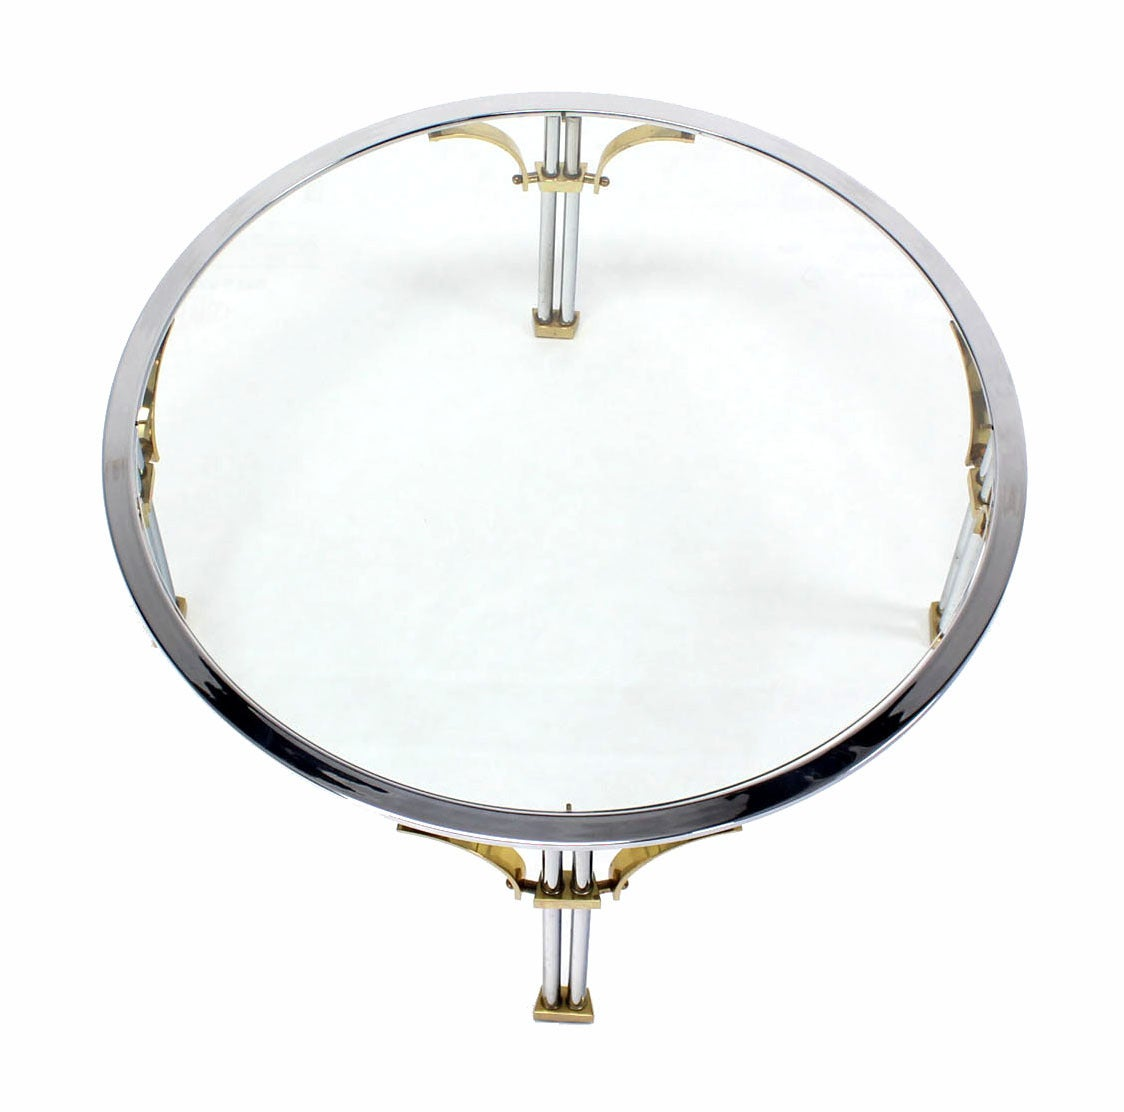 Mid Century Modern Chrome Brass and Glass Round Coffee Table For Sale 1